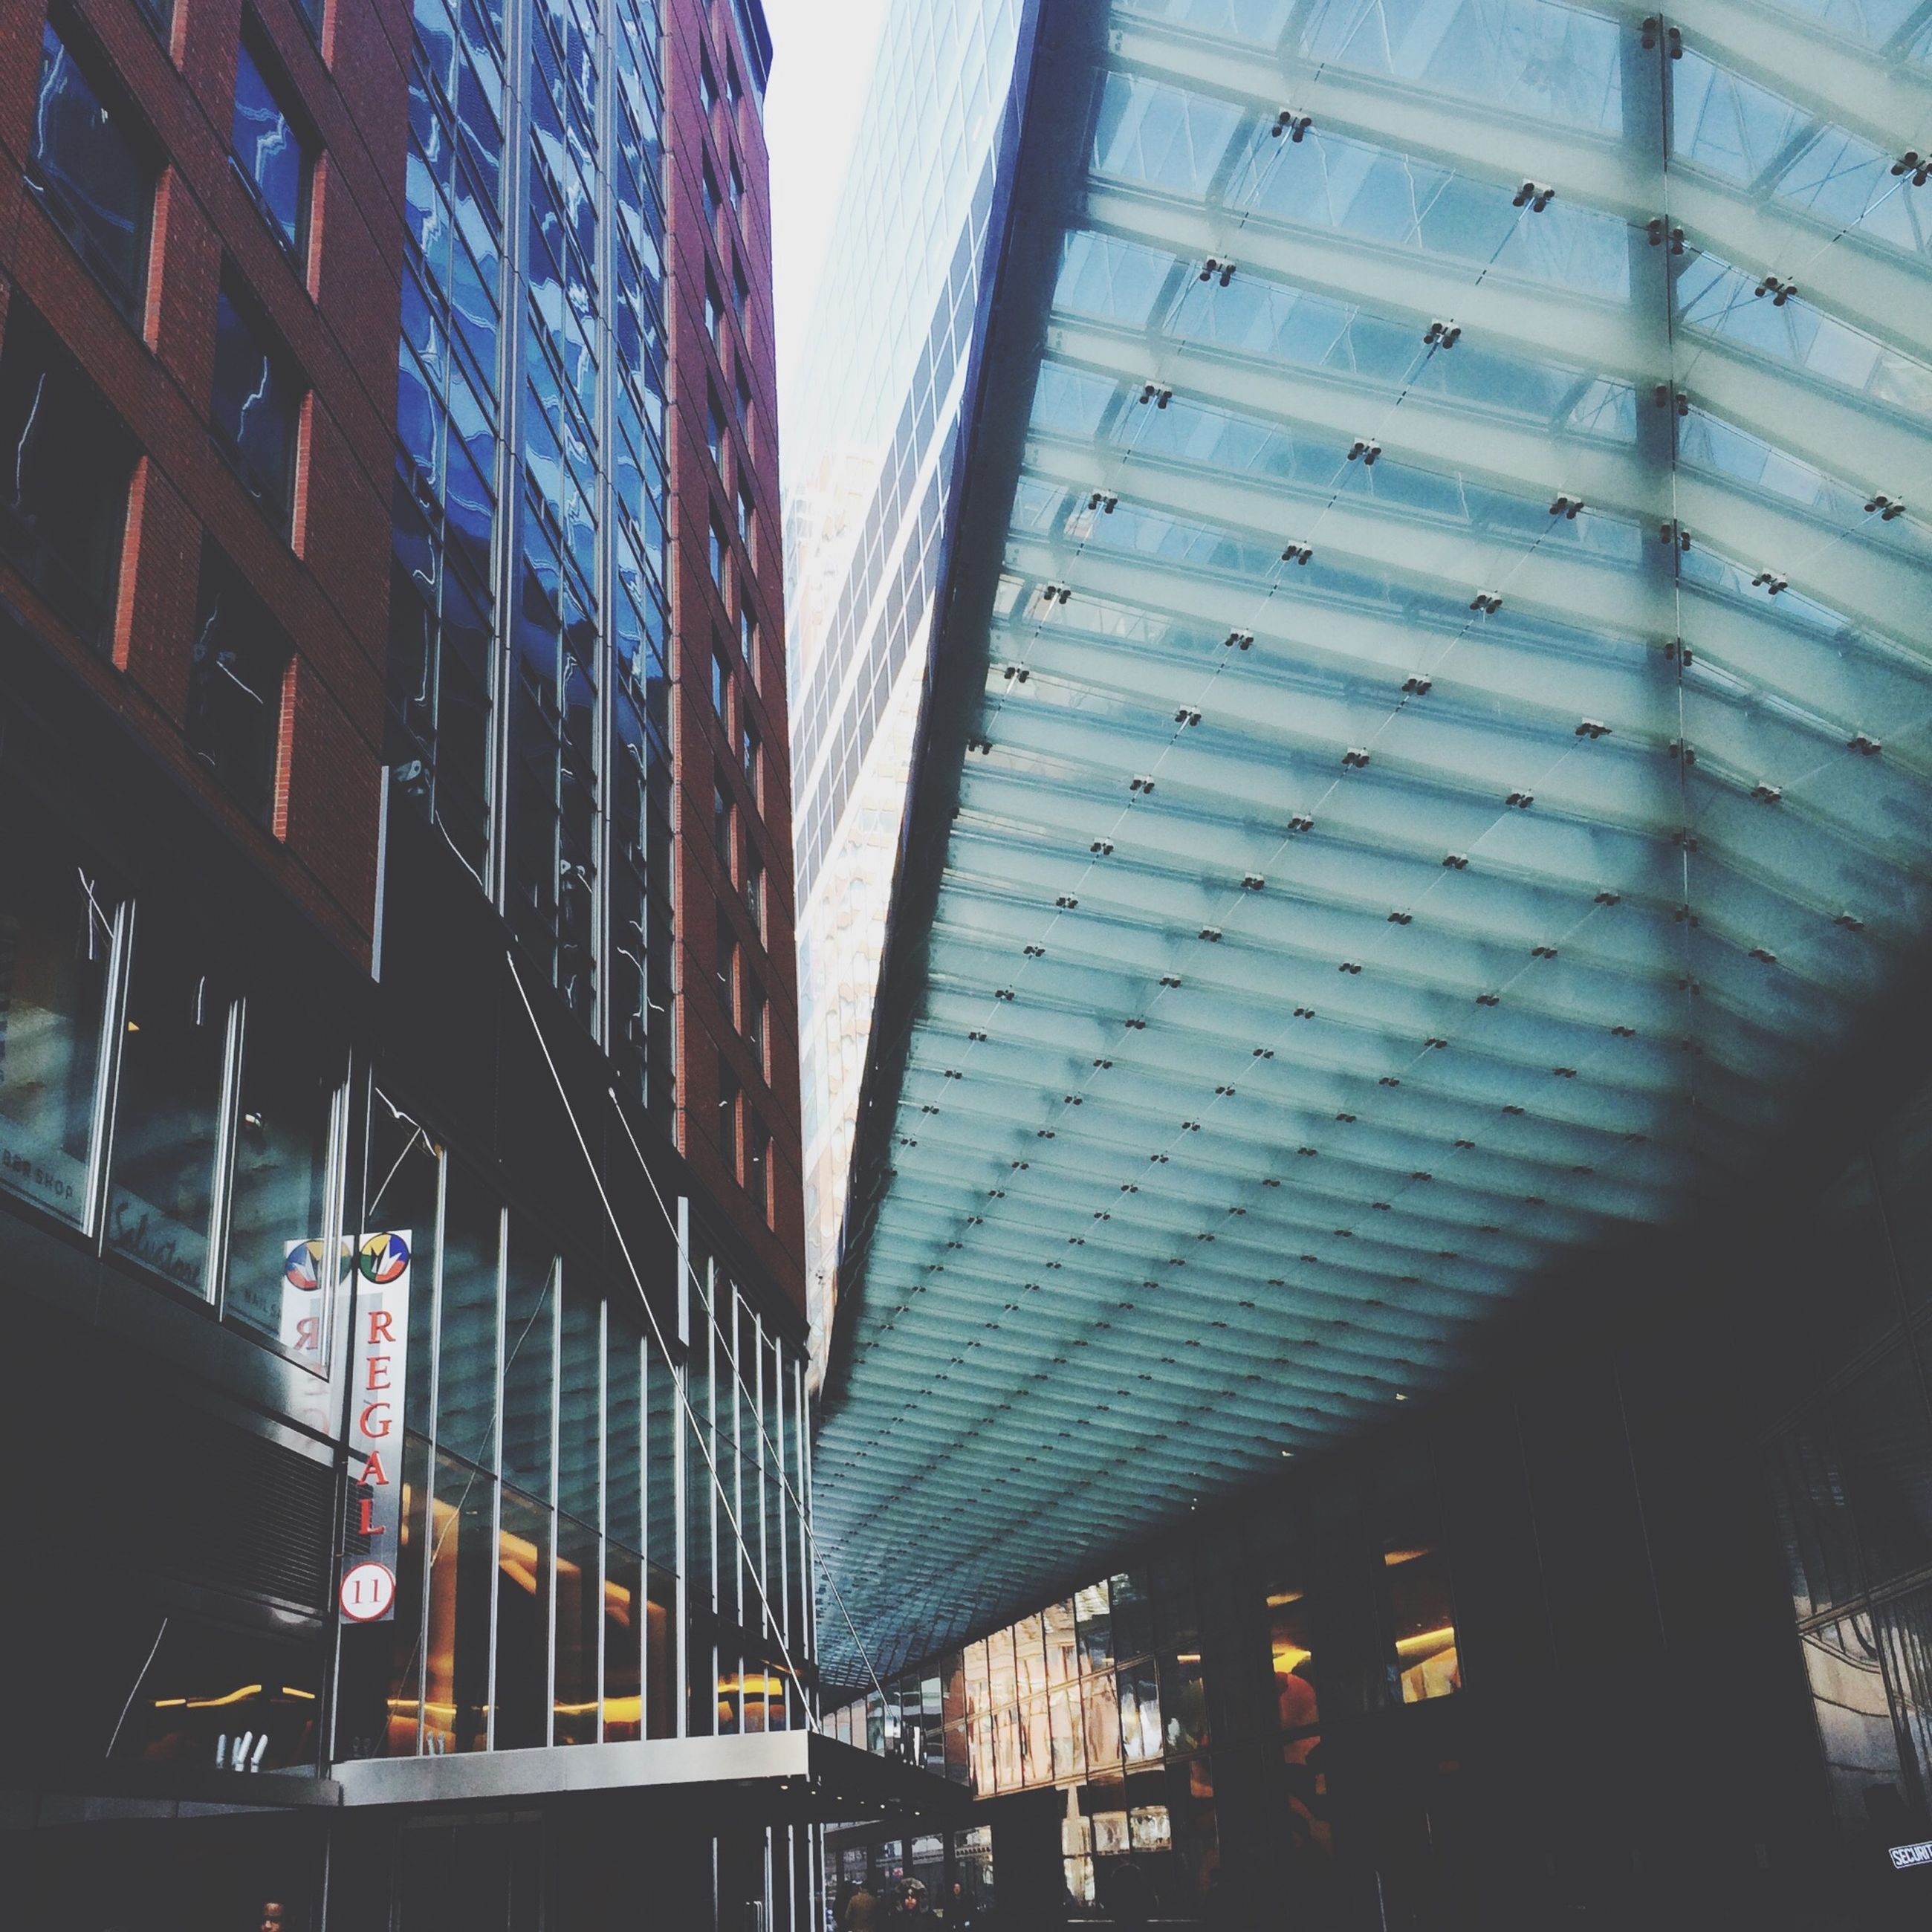 architecture, built structure, building exterior, low angle view, modern, glass - material, city, building, office building, window, reflection, sky, day, skyscraper, no people, outdoors, city life, pattern, transparent, diminishing perspective